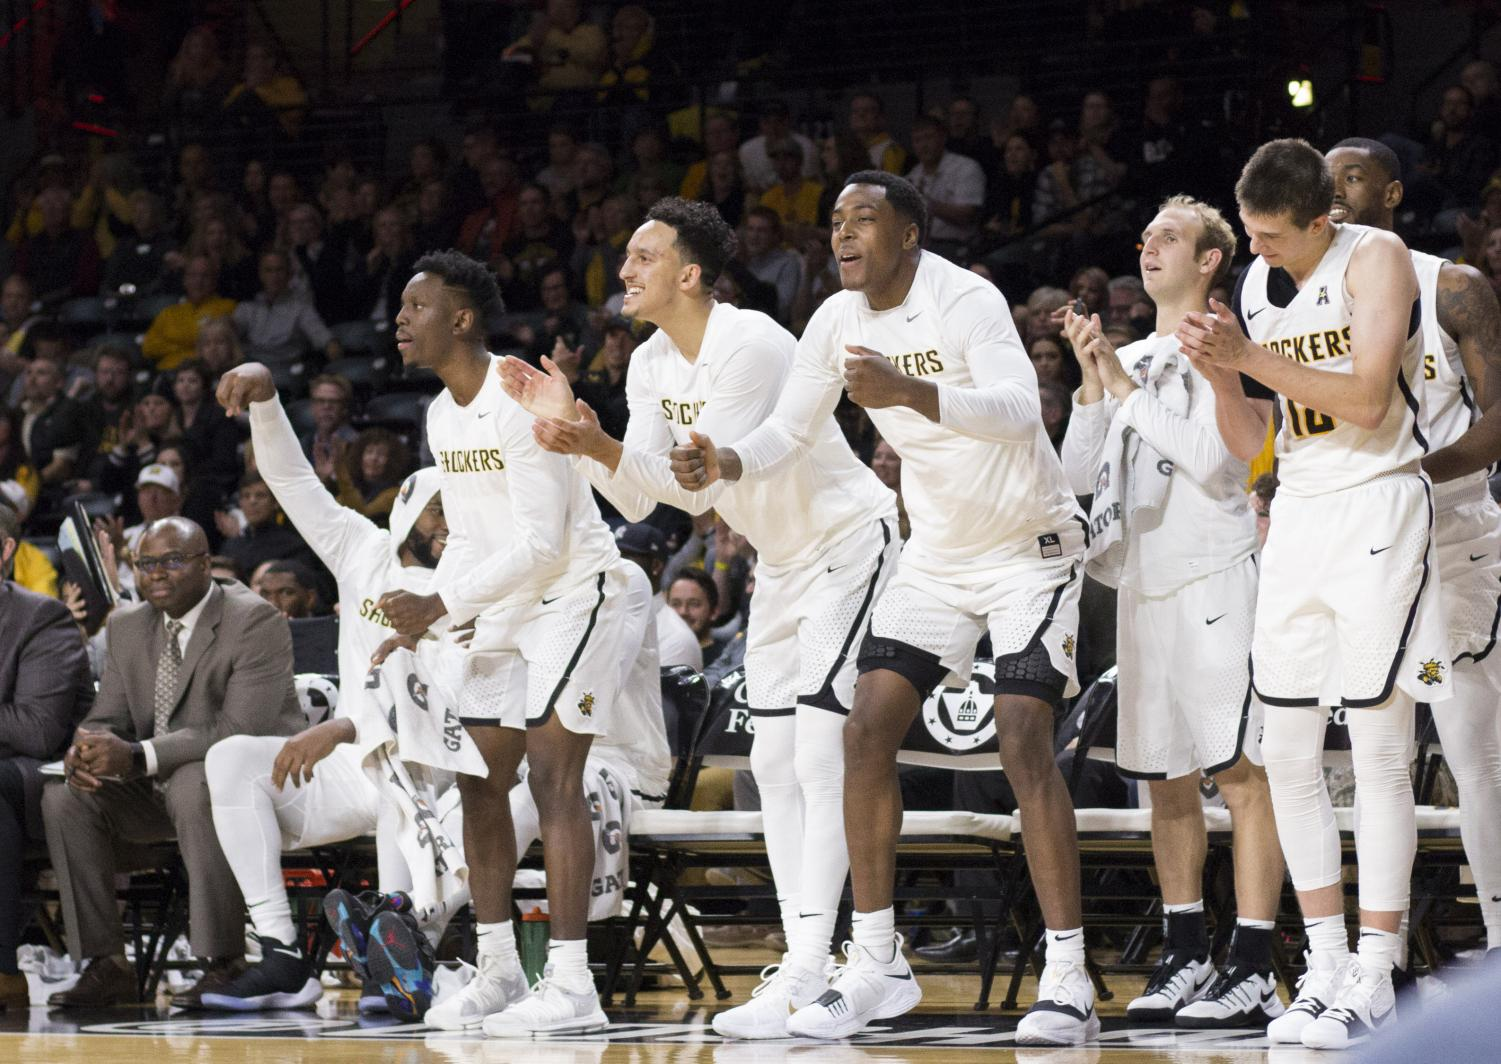 Shockers celebrate during the second half of the game against UKMC at Koch Arena.